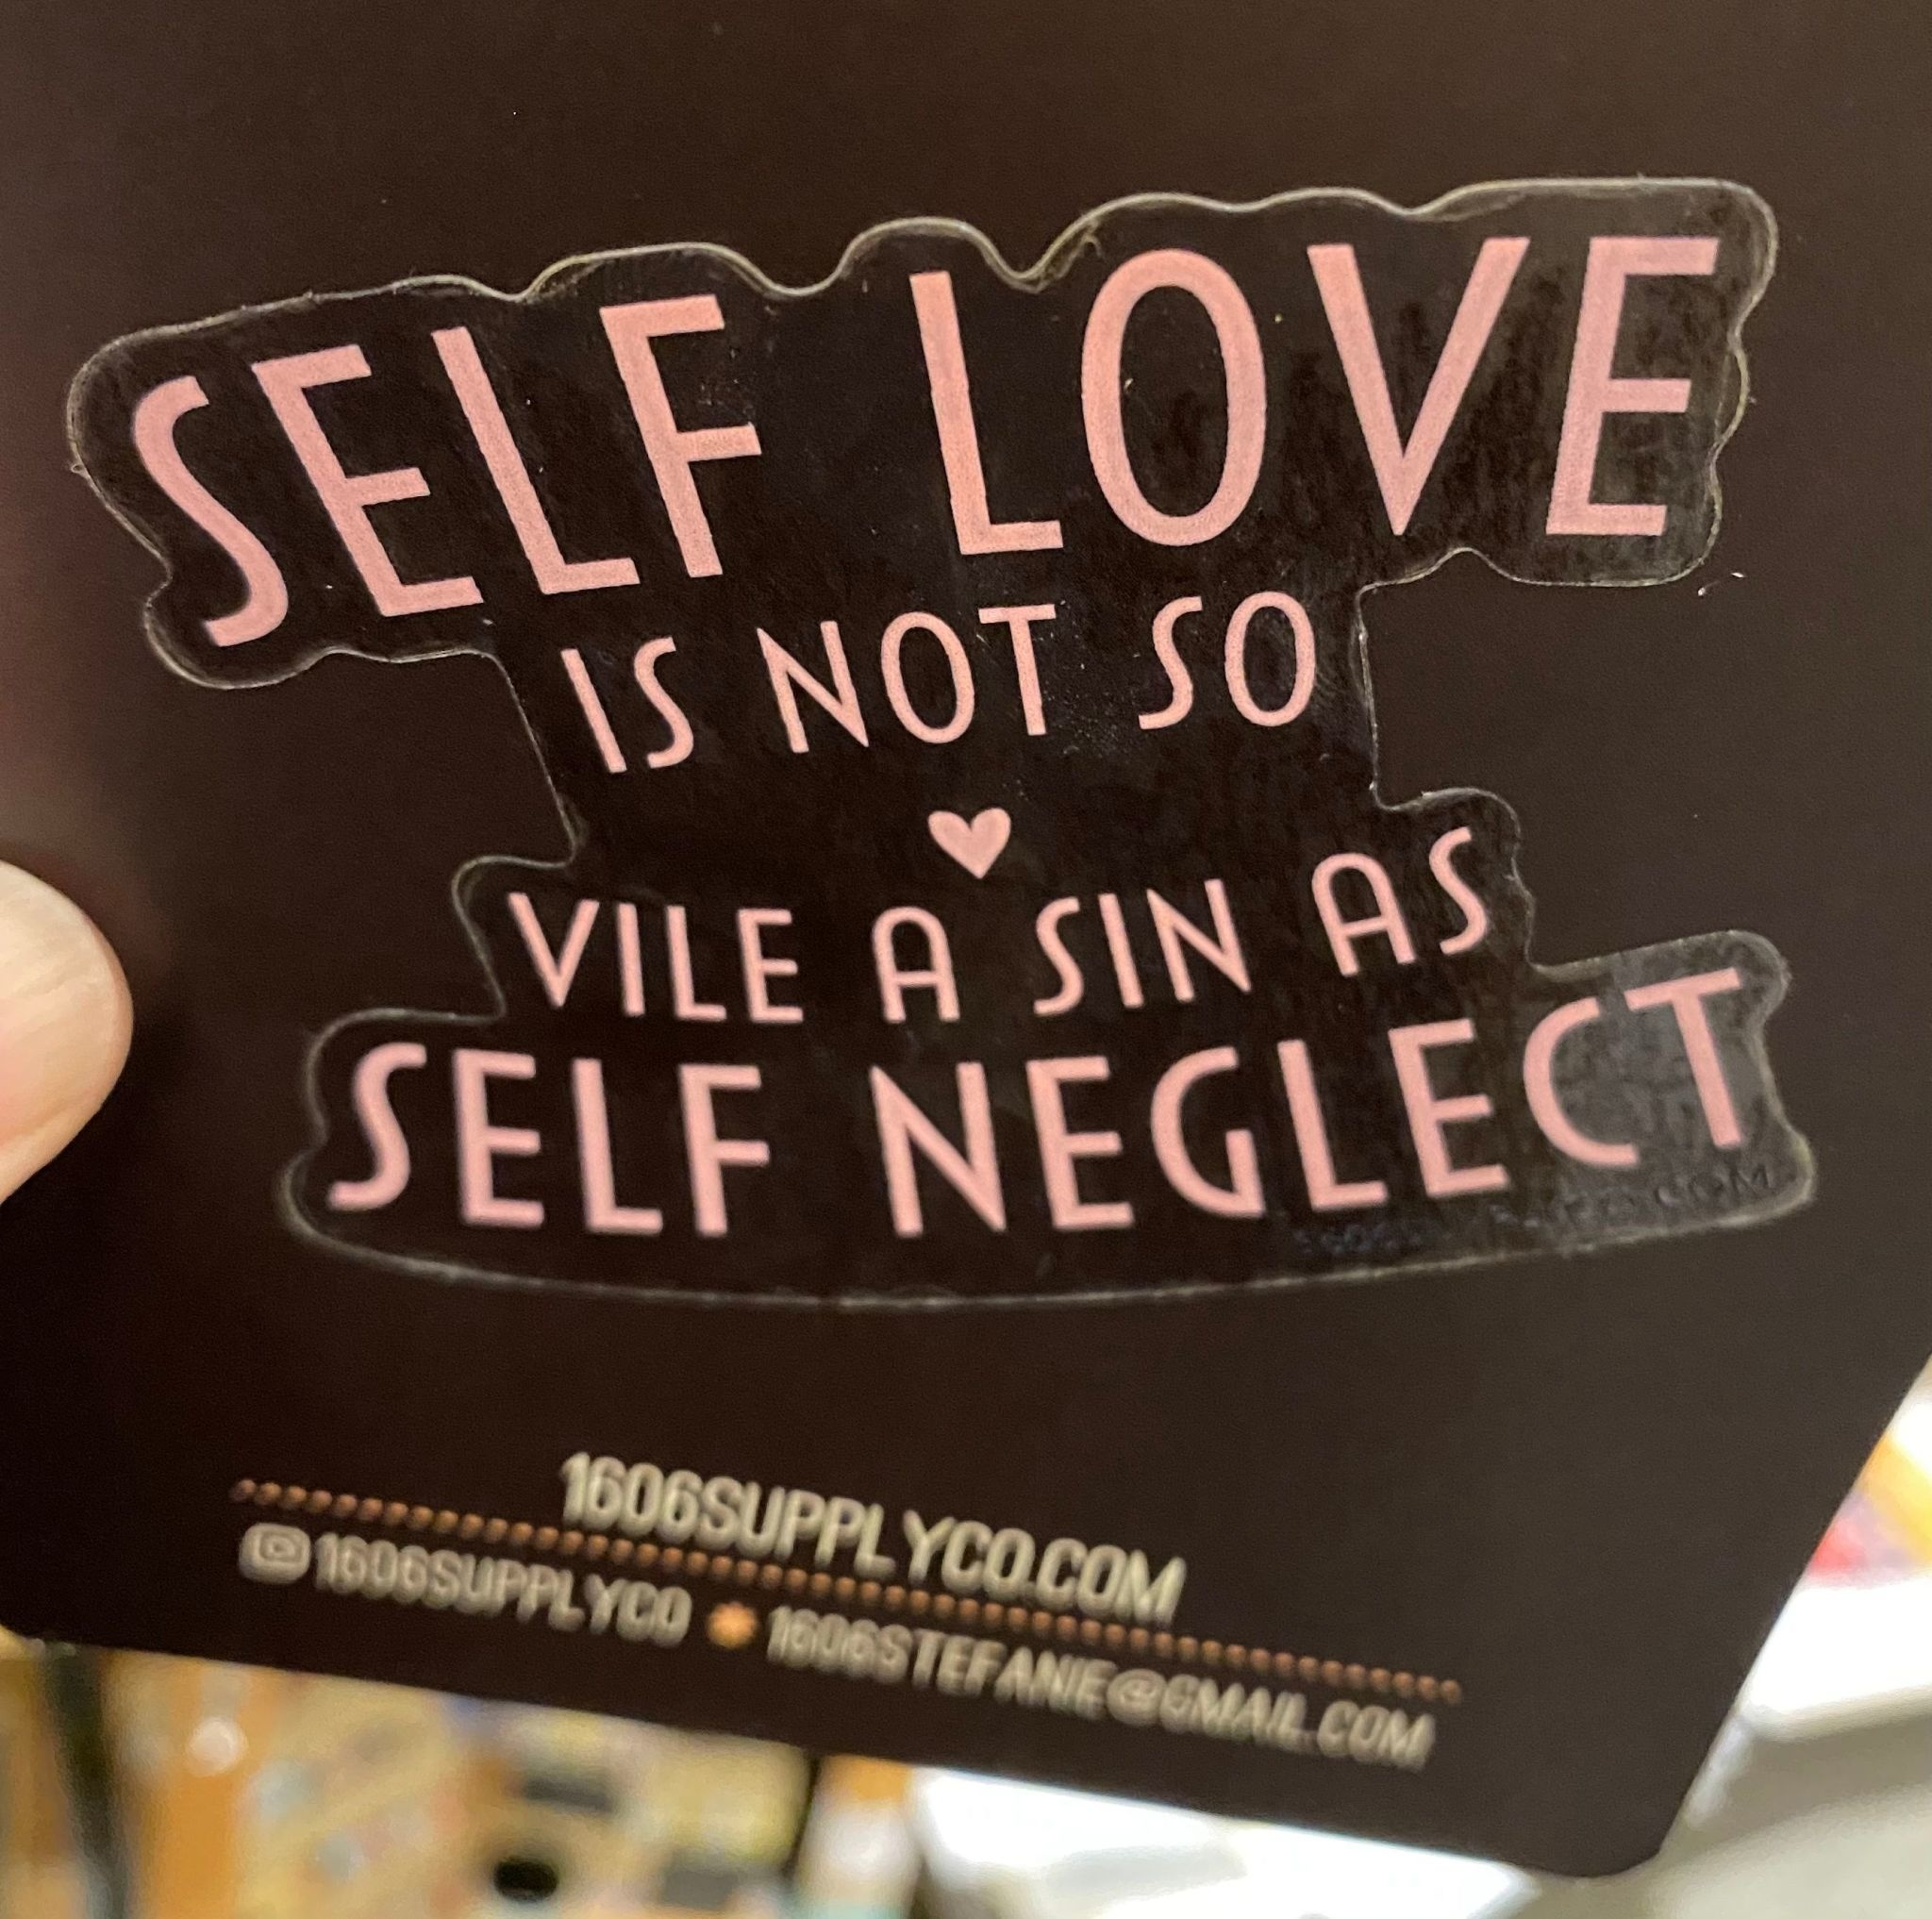 1606 // Sunset Avenue Ceramic Self Love / Self Neglect Sticker